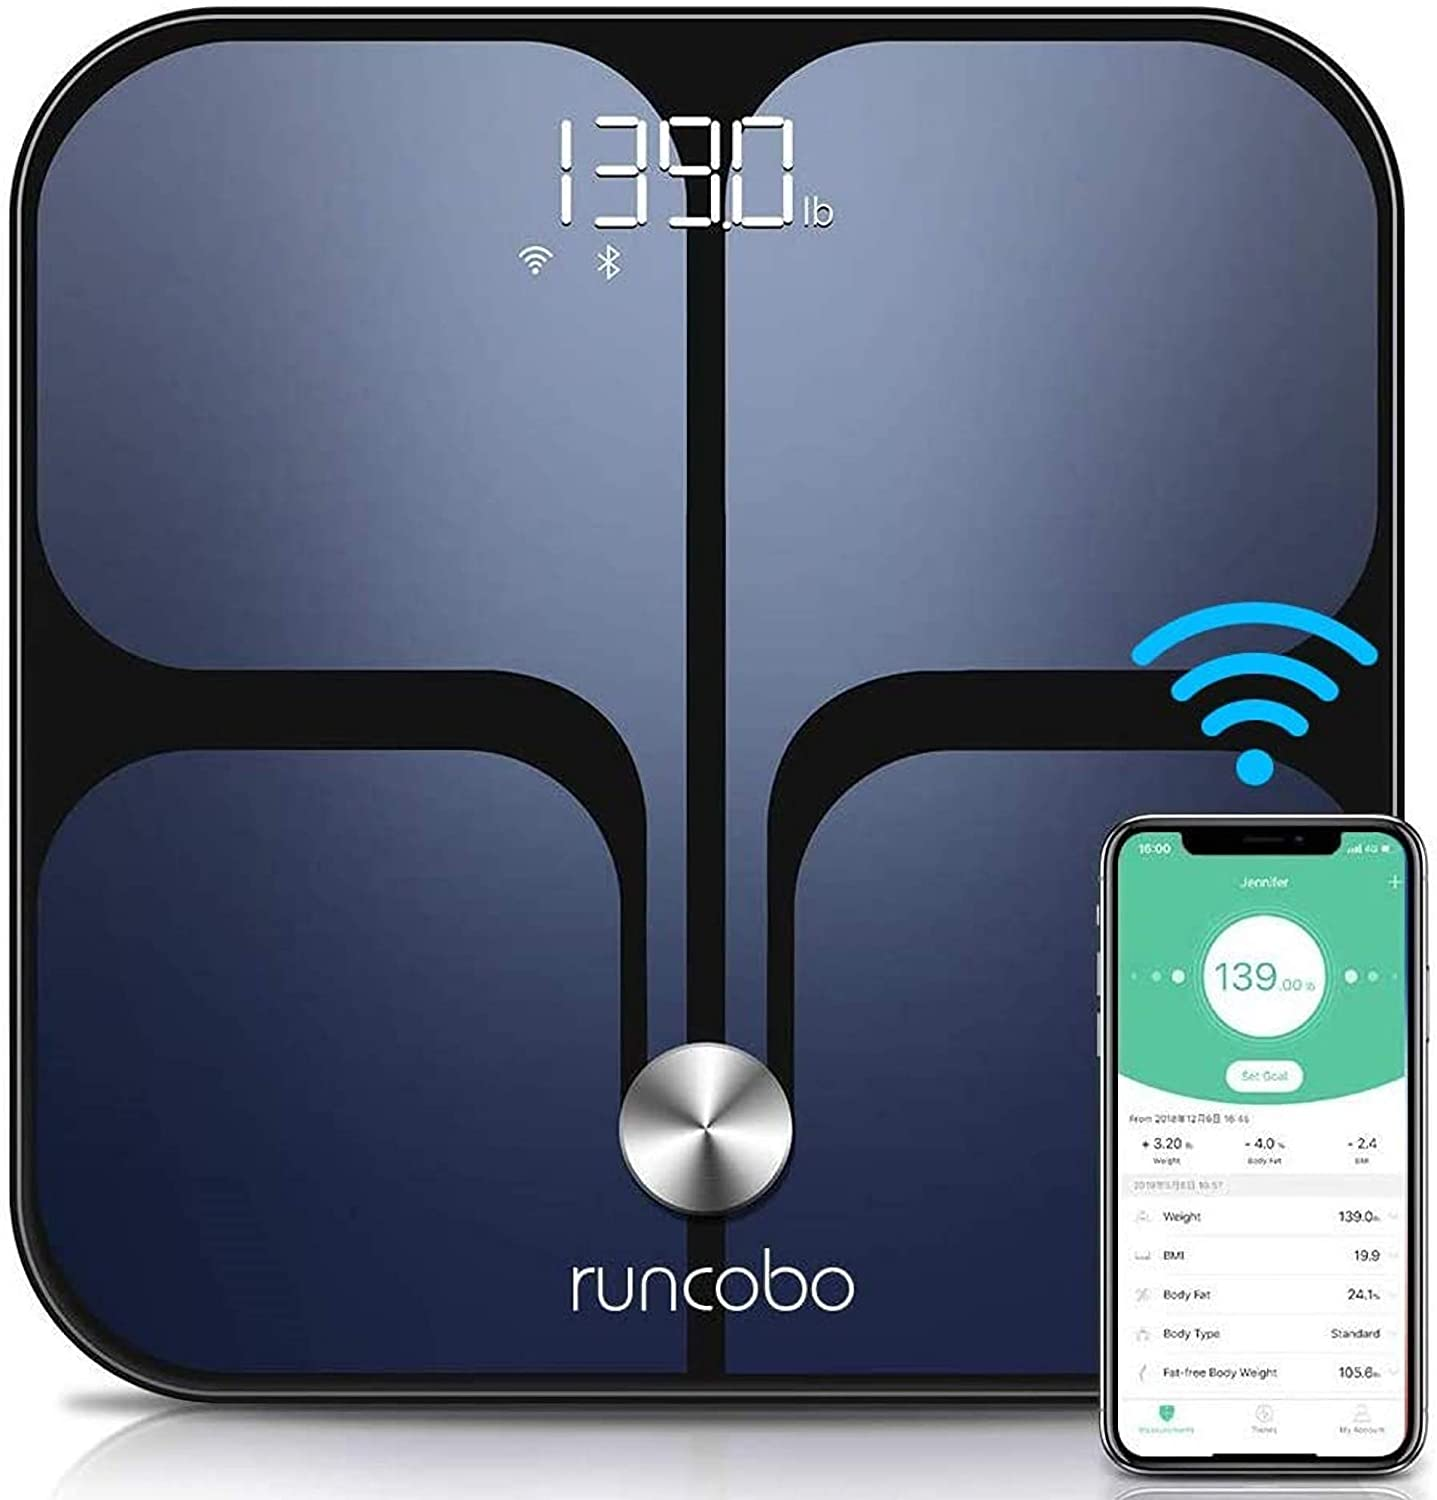 Runcobo Digital Scales